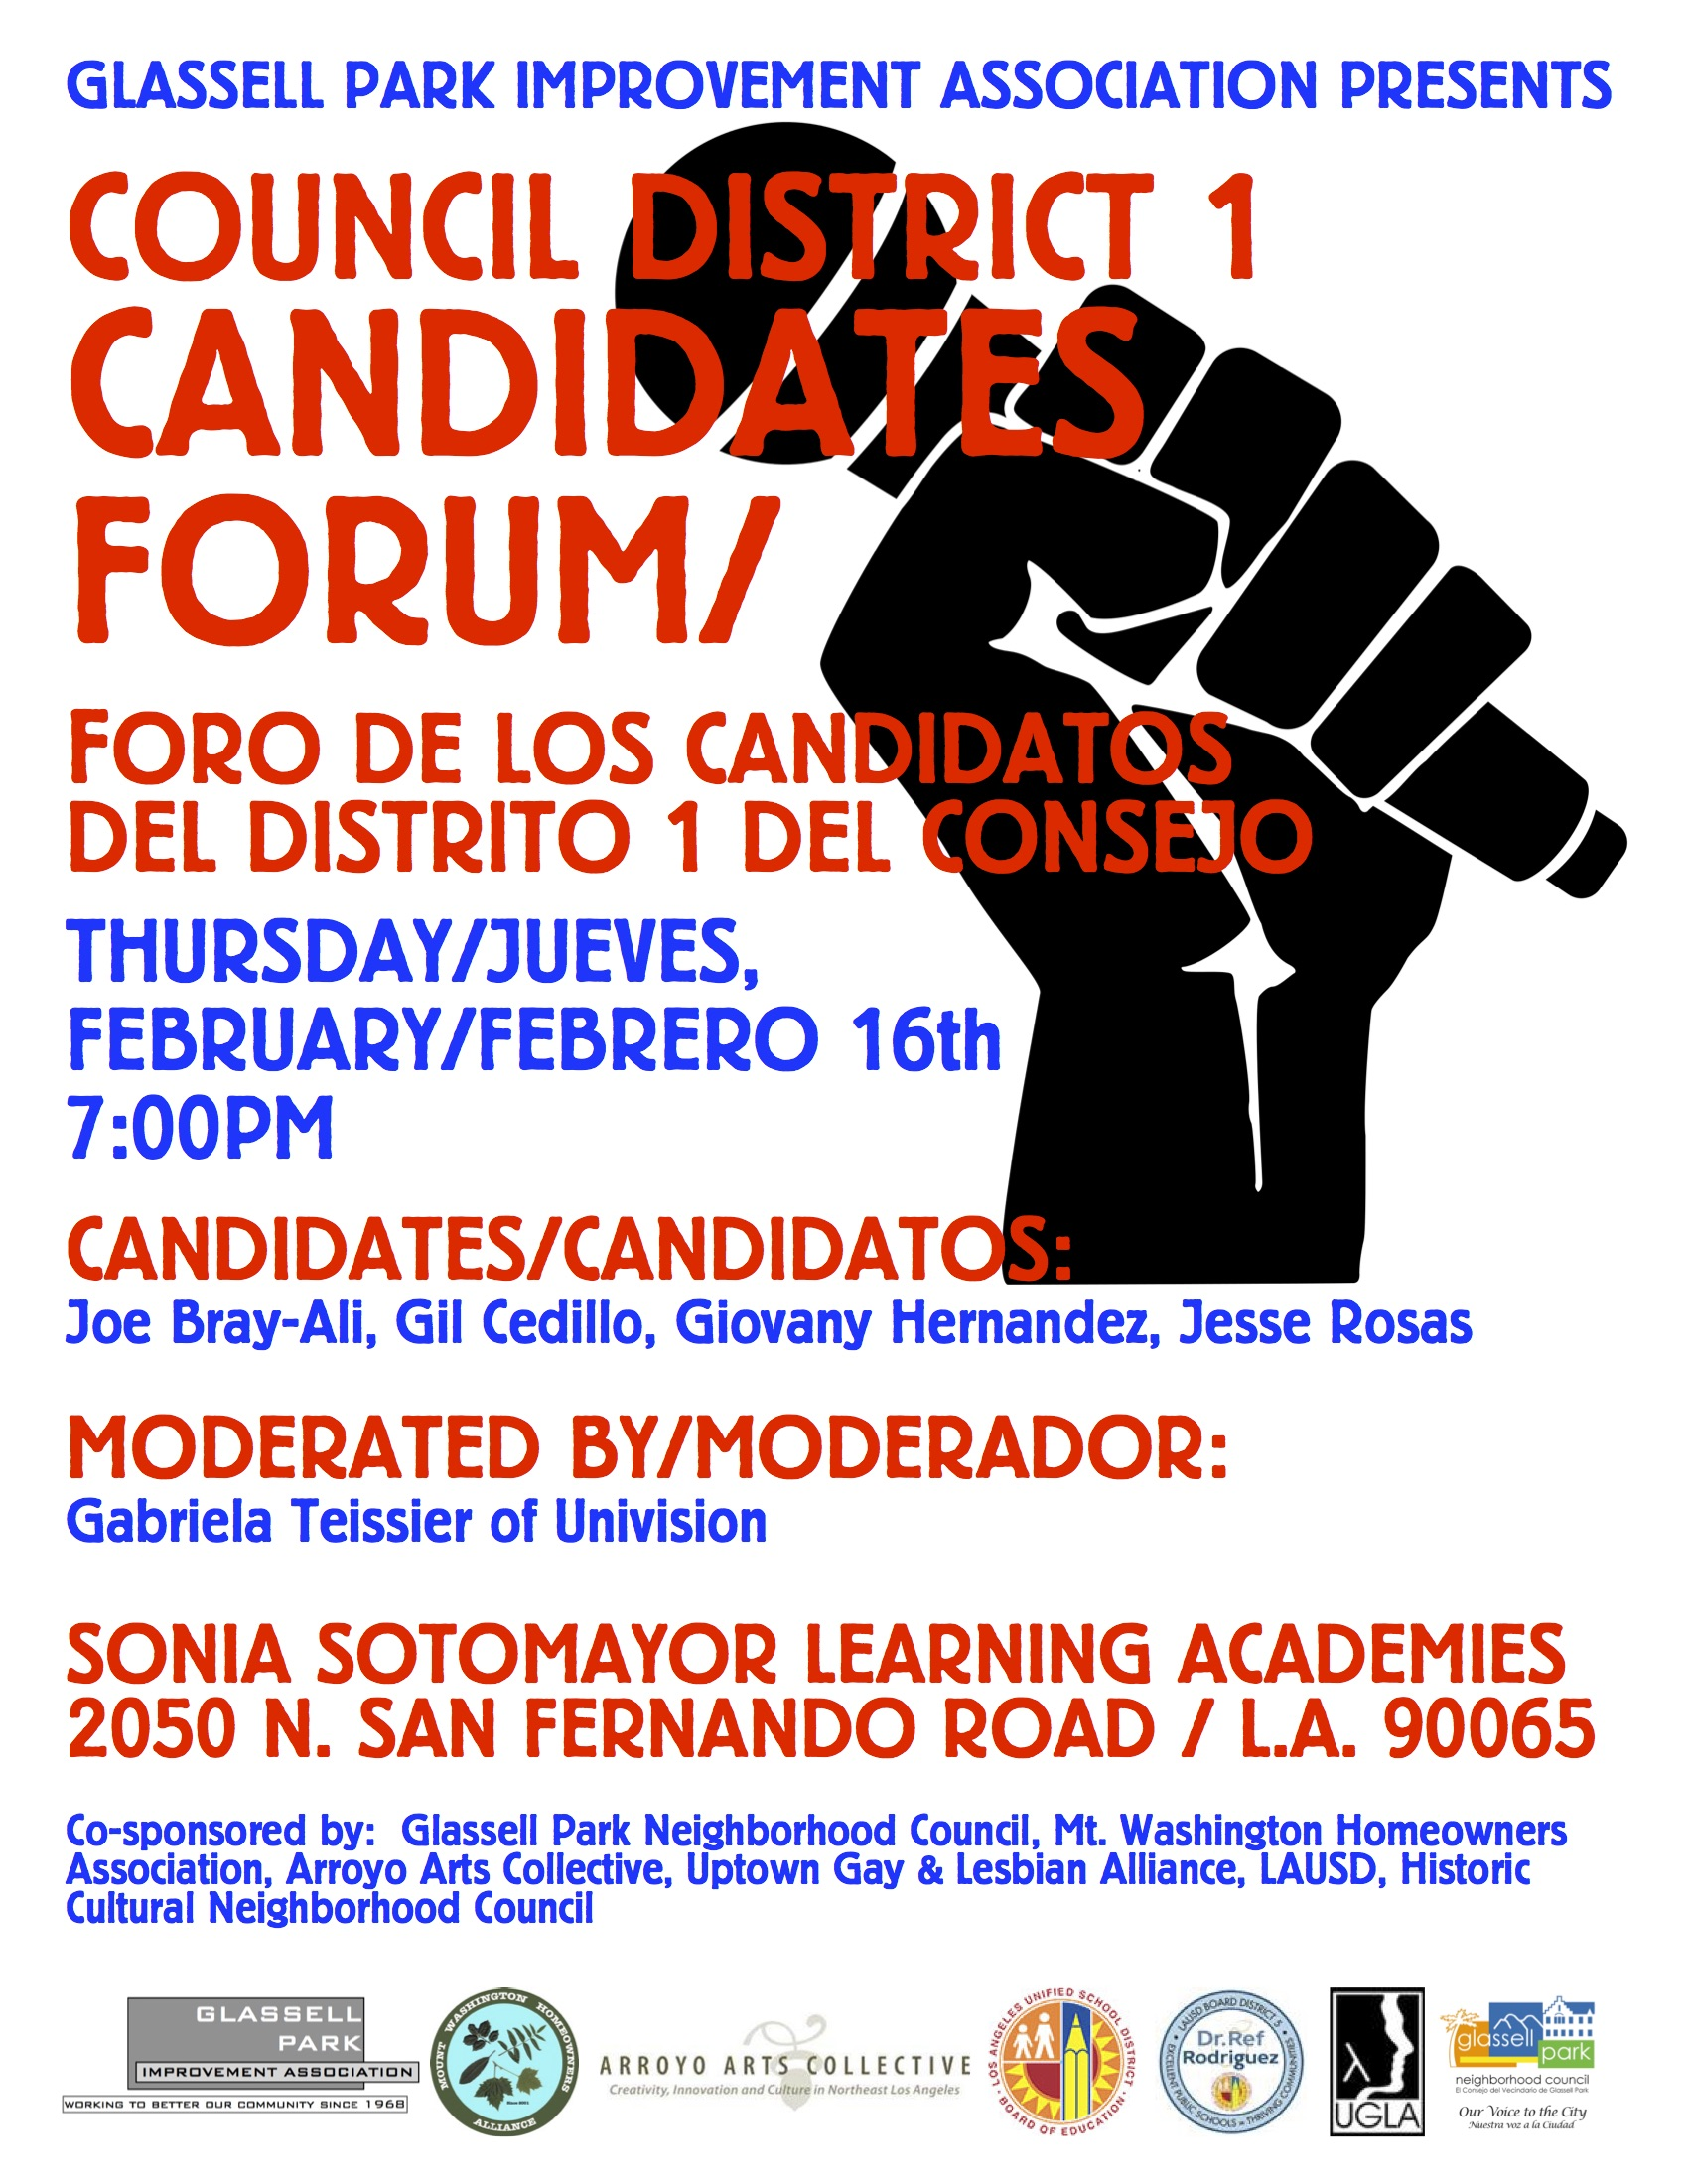 CD1_forum_flyer_bilingual_(1).jpg